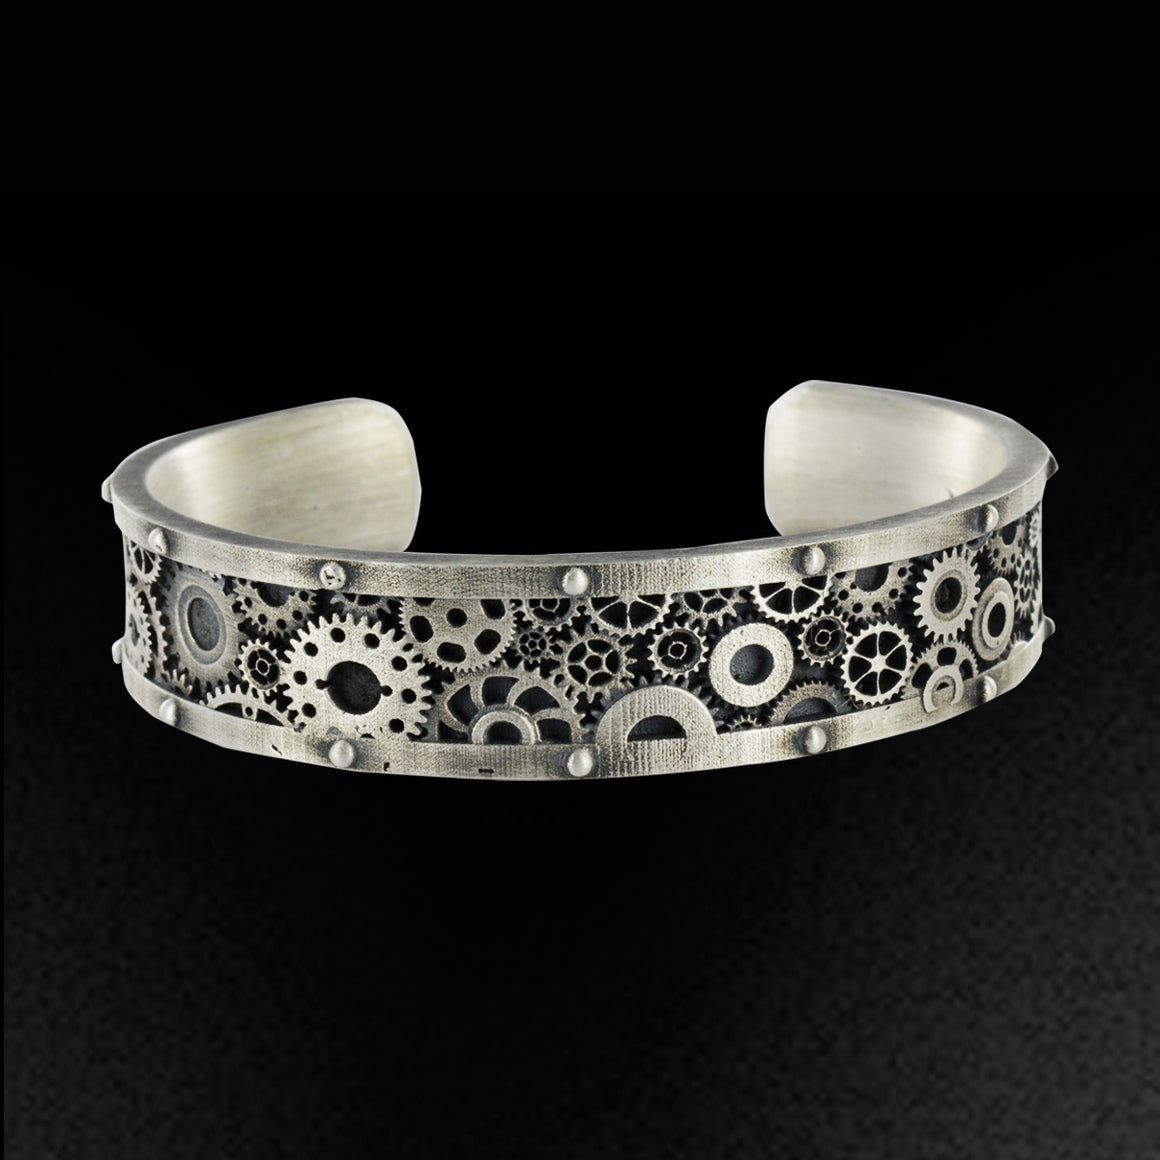 "2 SAINTS - Bracelet - ""Gear Cuff"""